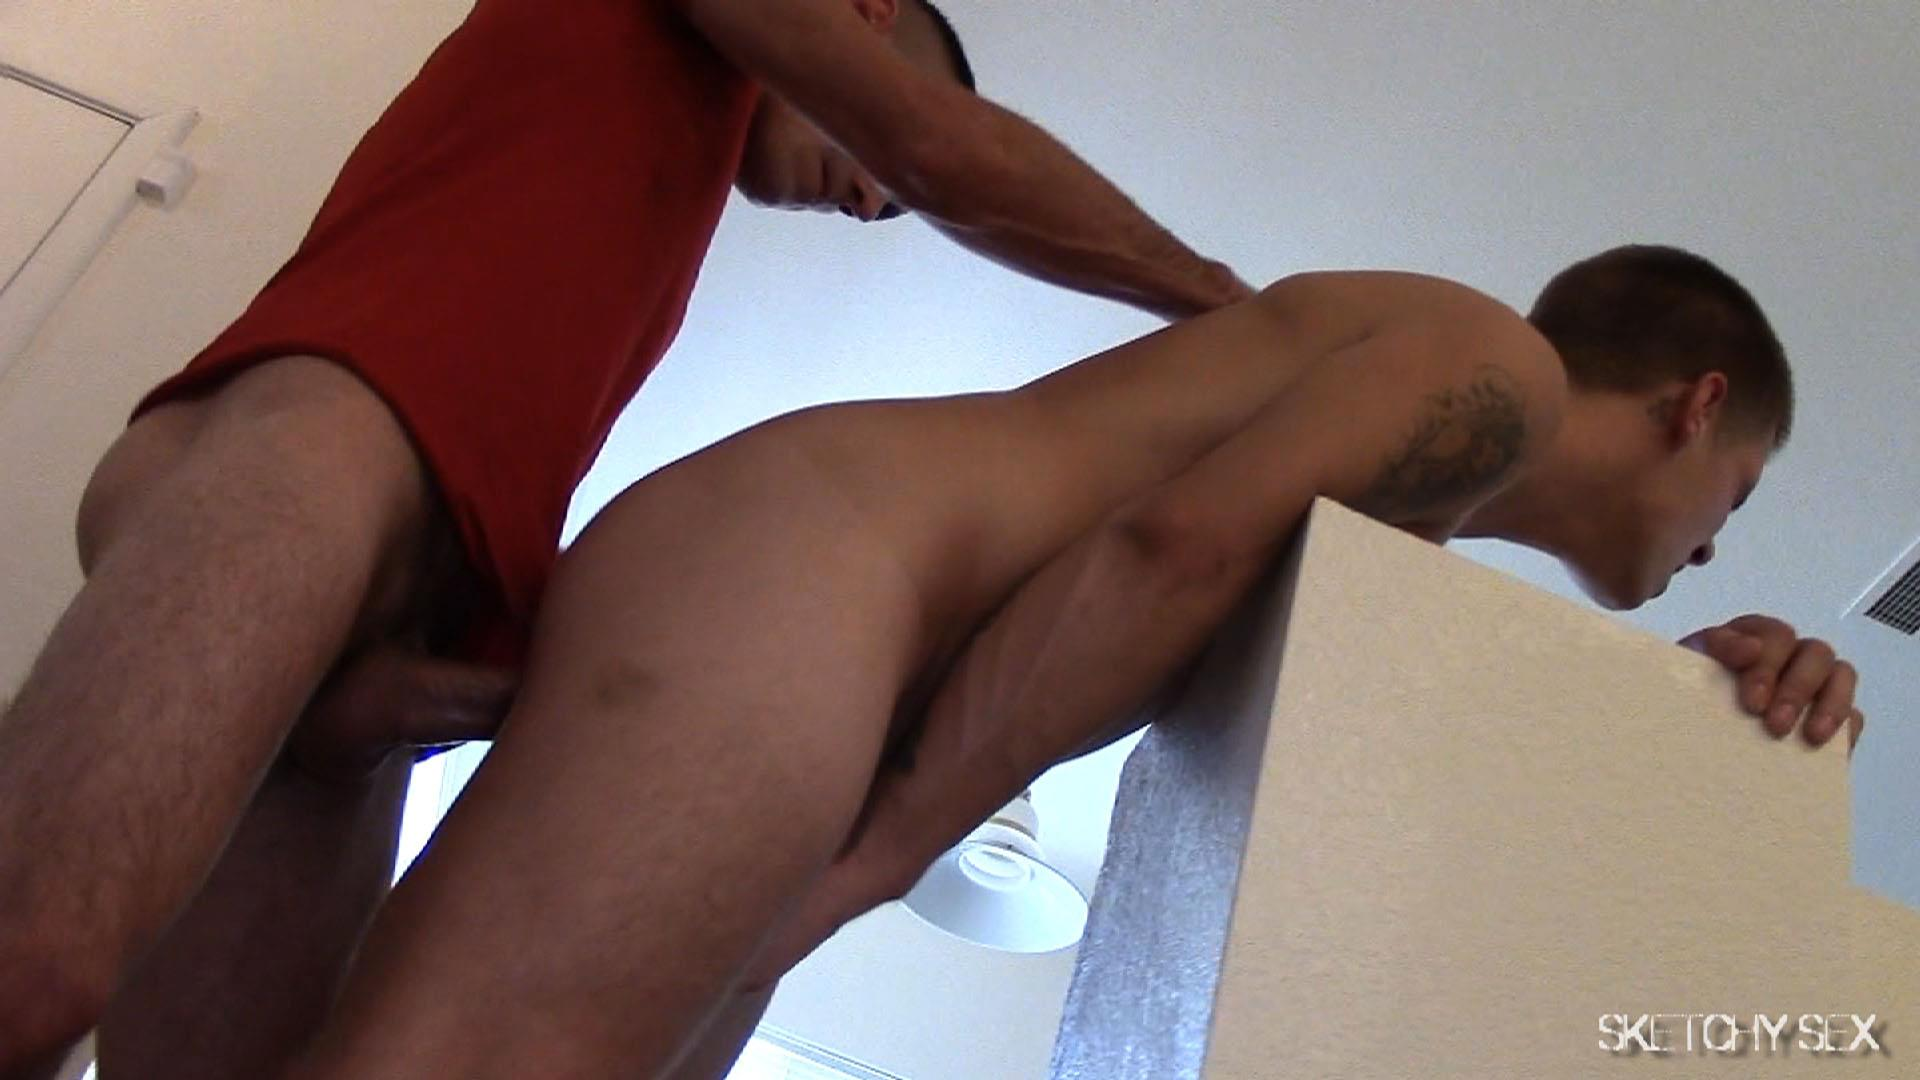 """Sketchy-Sex-Nate-Getting-Fucked-Bareback-By-A-10-Inch-Craigslist-Cock-Amateur-Gay-Porn-06 Taking A 10"""" Craigslist Cock Bareback While The Roommate Watches"""